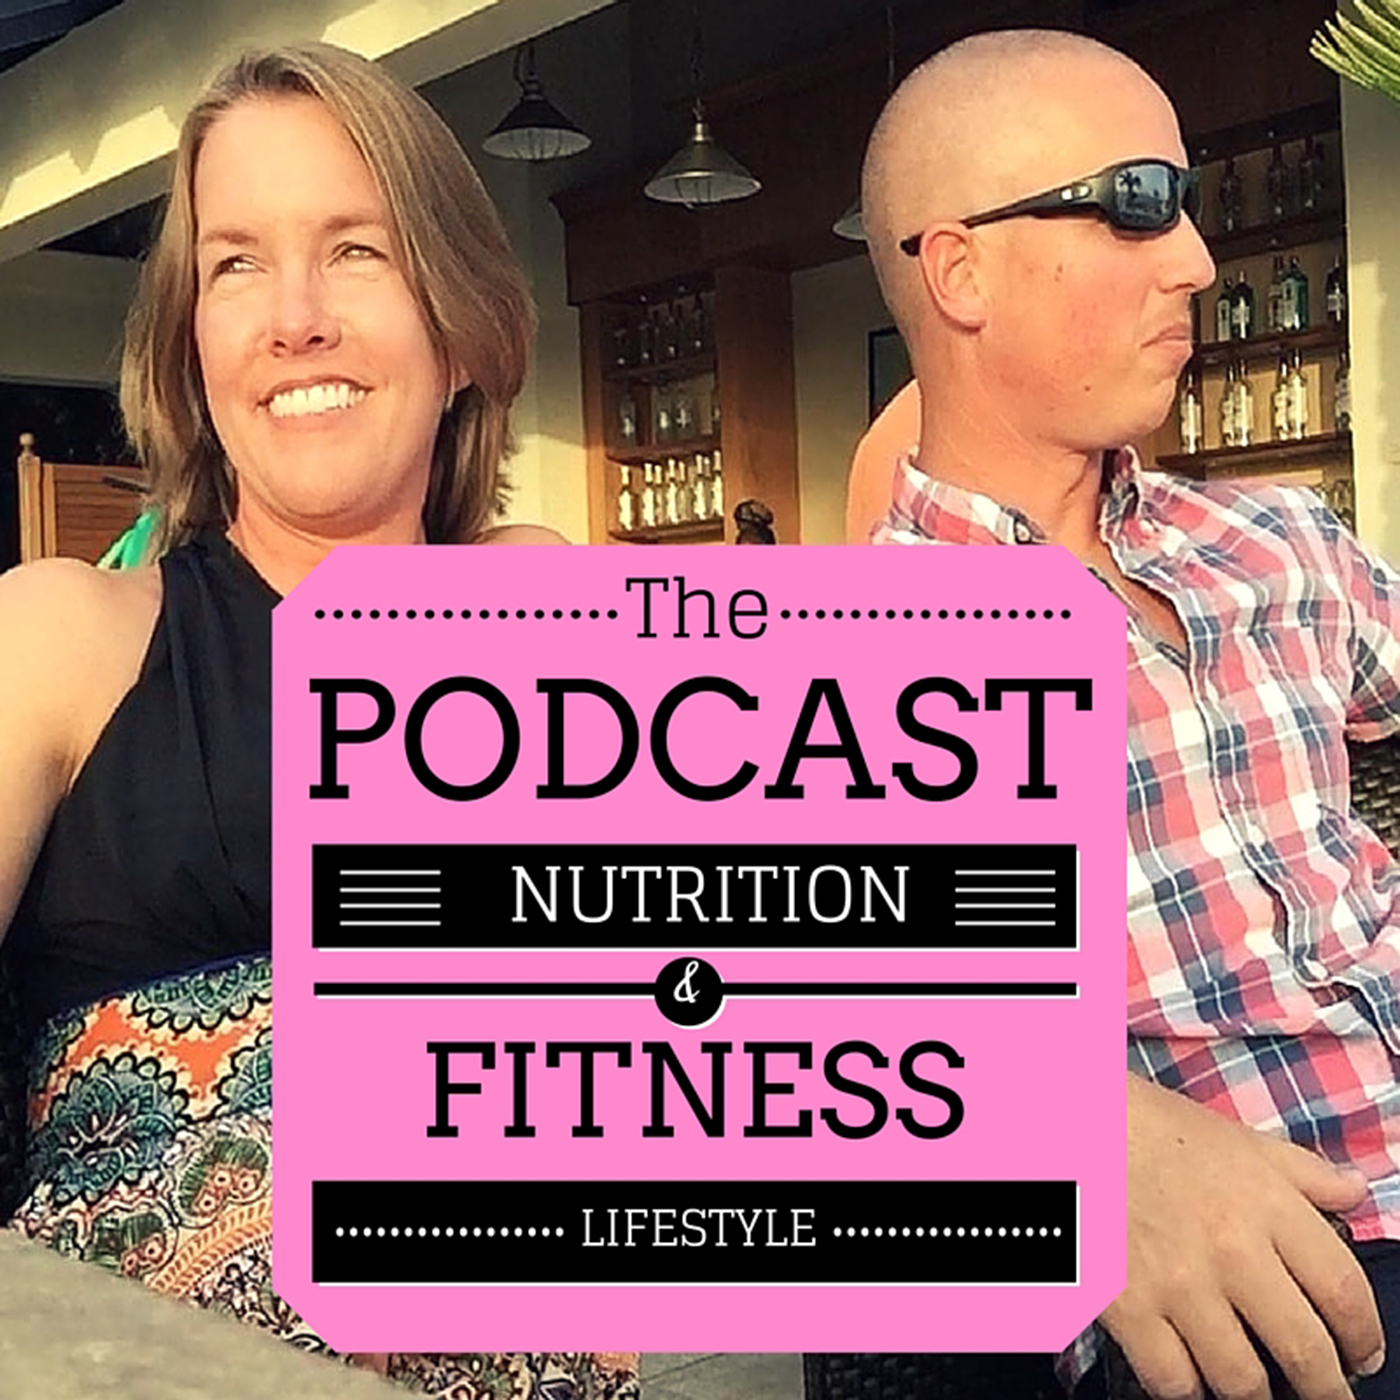 Podcast - Nutrition and Fitness Lifestyle